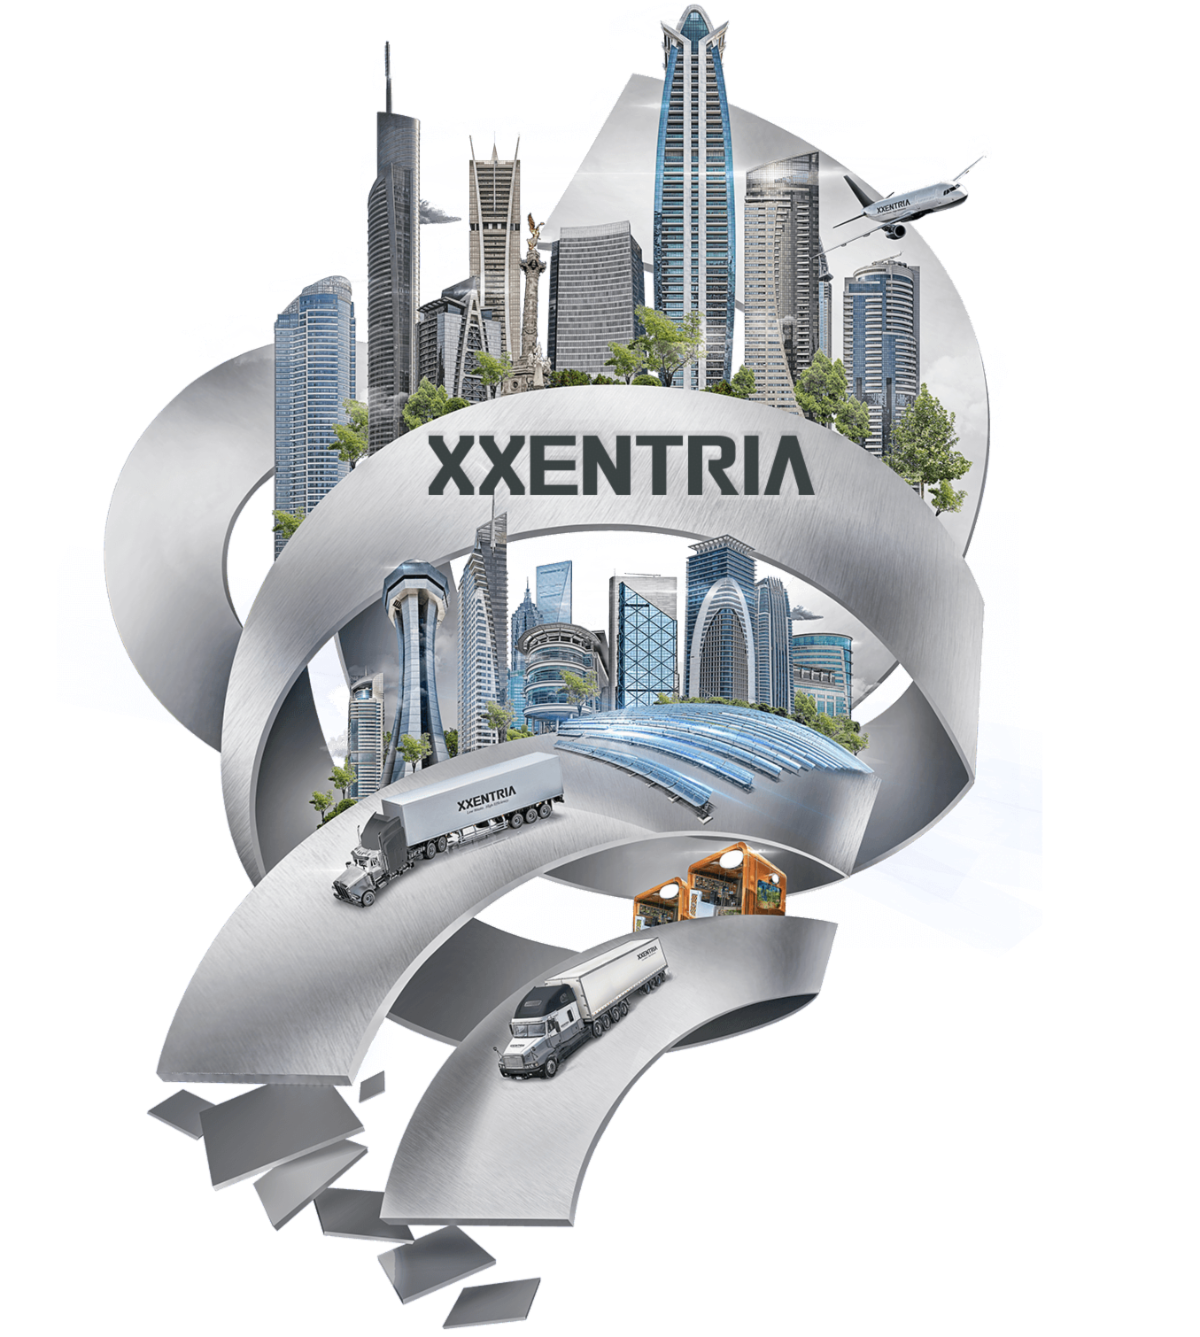 Xxentria to Co-Locate Administrative Offices, Manufacturing, and Distribution Facilities in New Mexico